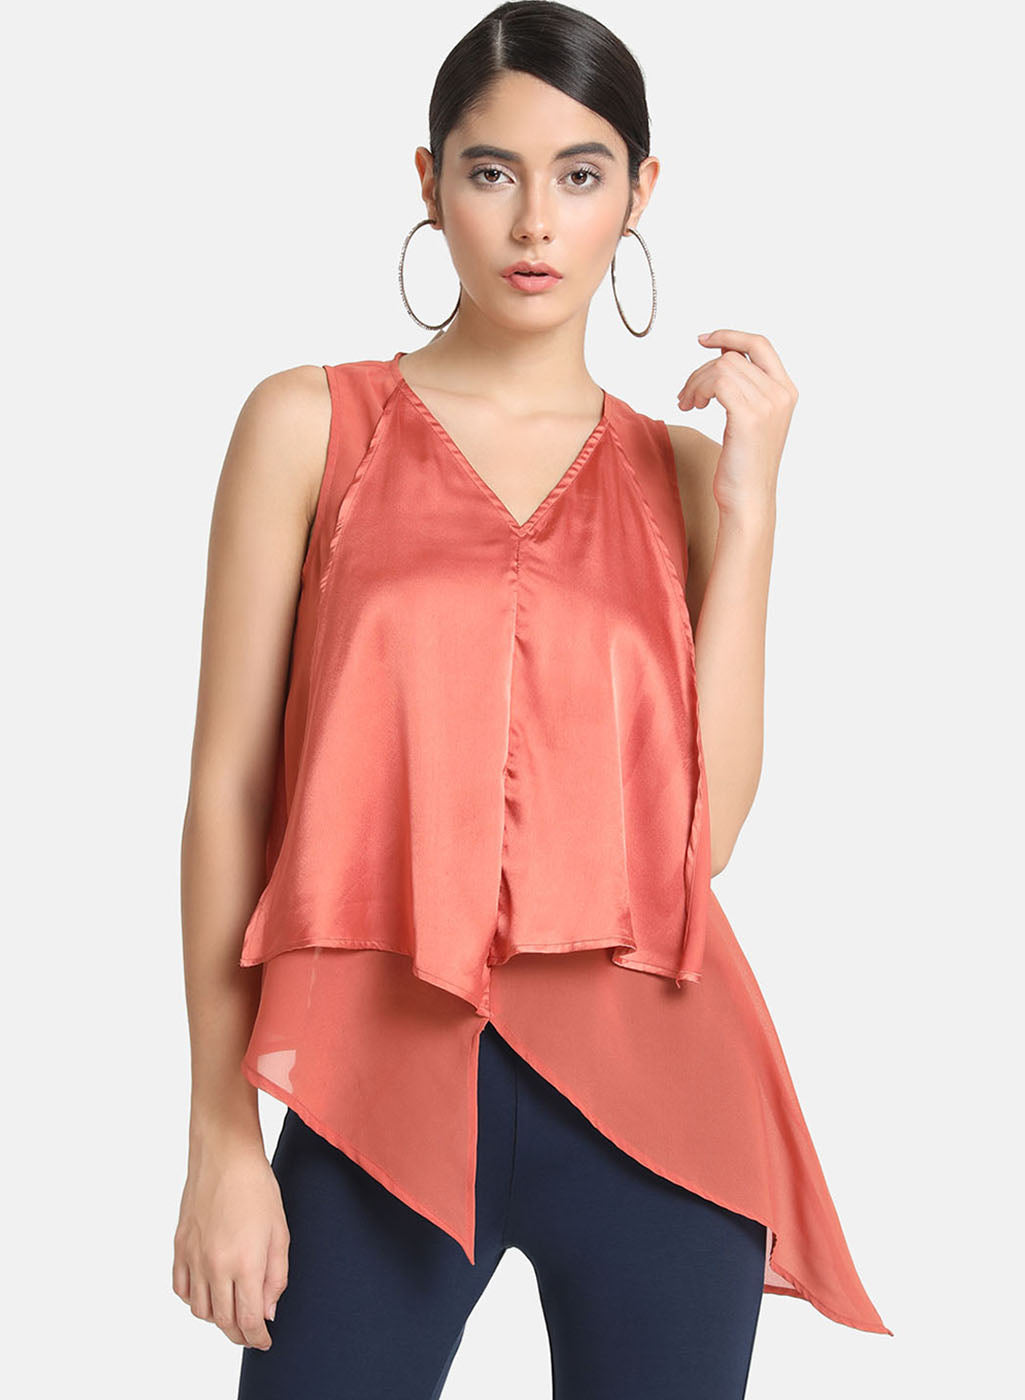 Aysmmetric Sleeveless Top In Ggt & Satin